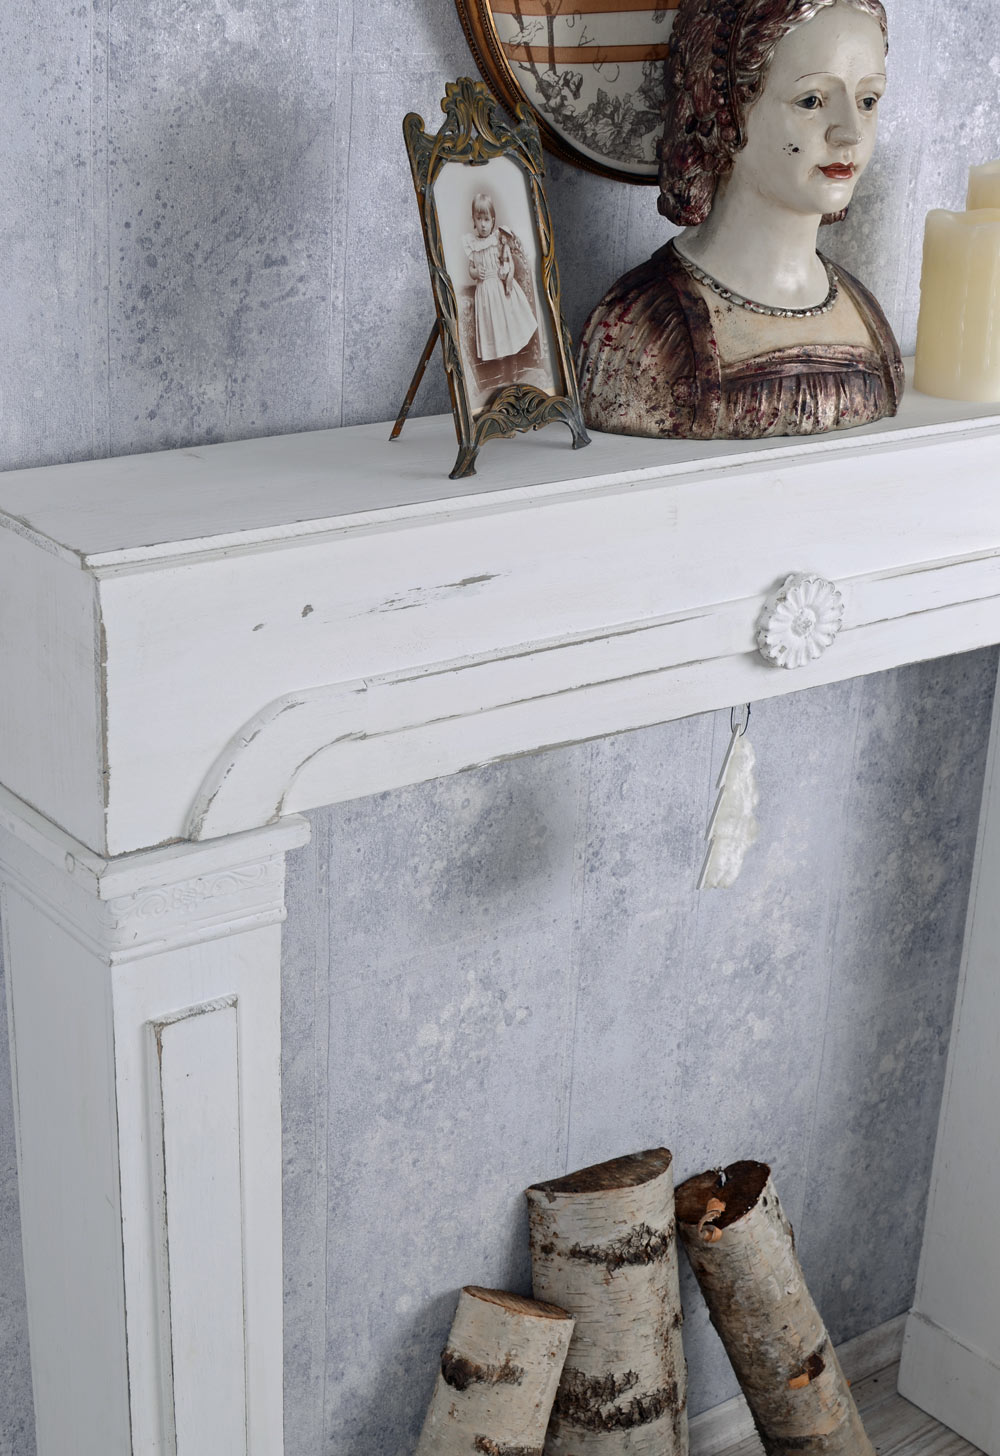 kaminkonsole shabby chic dekokamin vintage kamin weiss holzkamin ebay. Black Bedroom Furniture Sets. Home Design Ideas